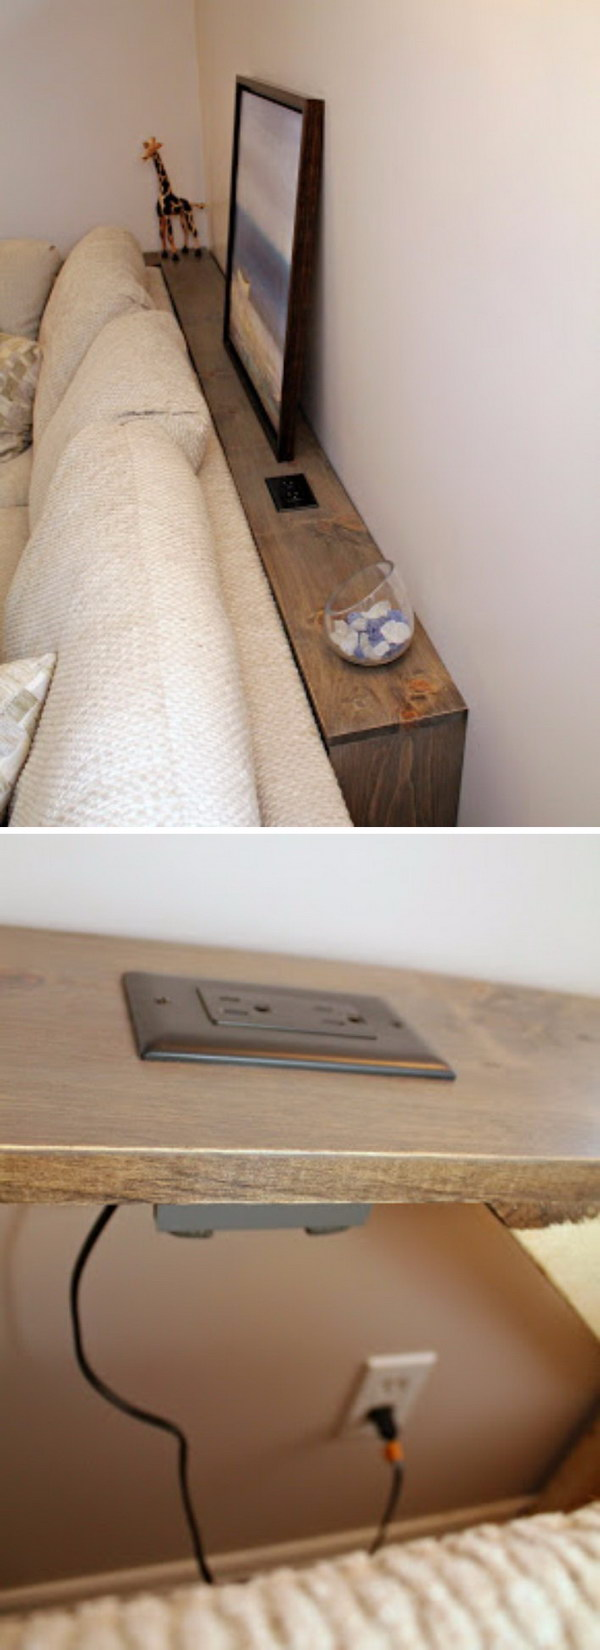 This DIY sofa table has a built in outlet which allows you plug in your electronics easily.